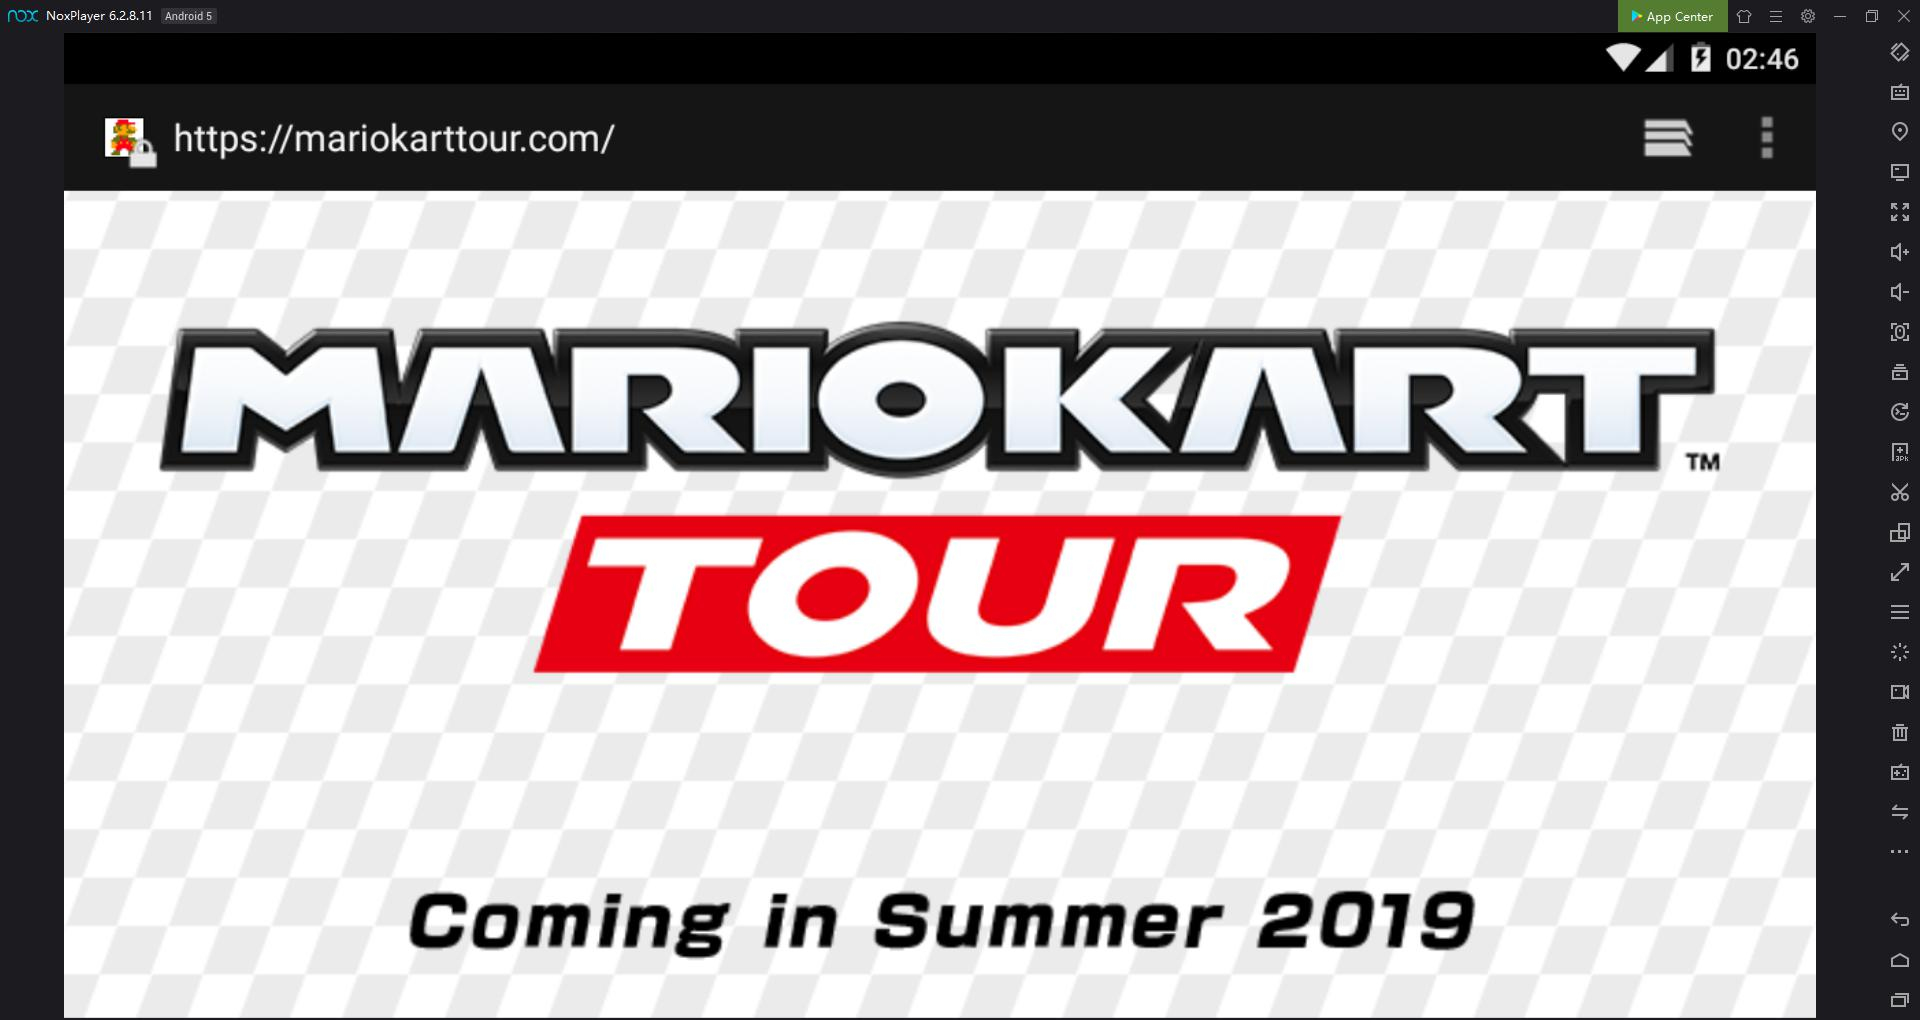 How to sign up for Mario Kart Tour beta on PC | NoxPlayer